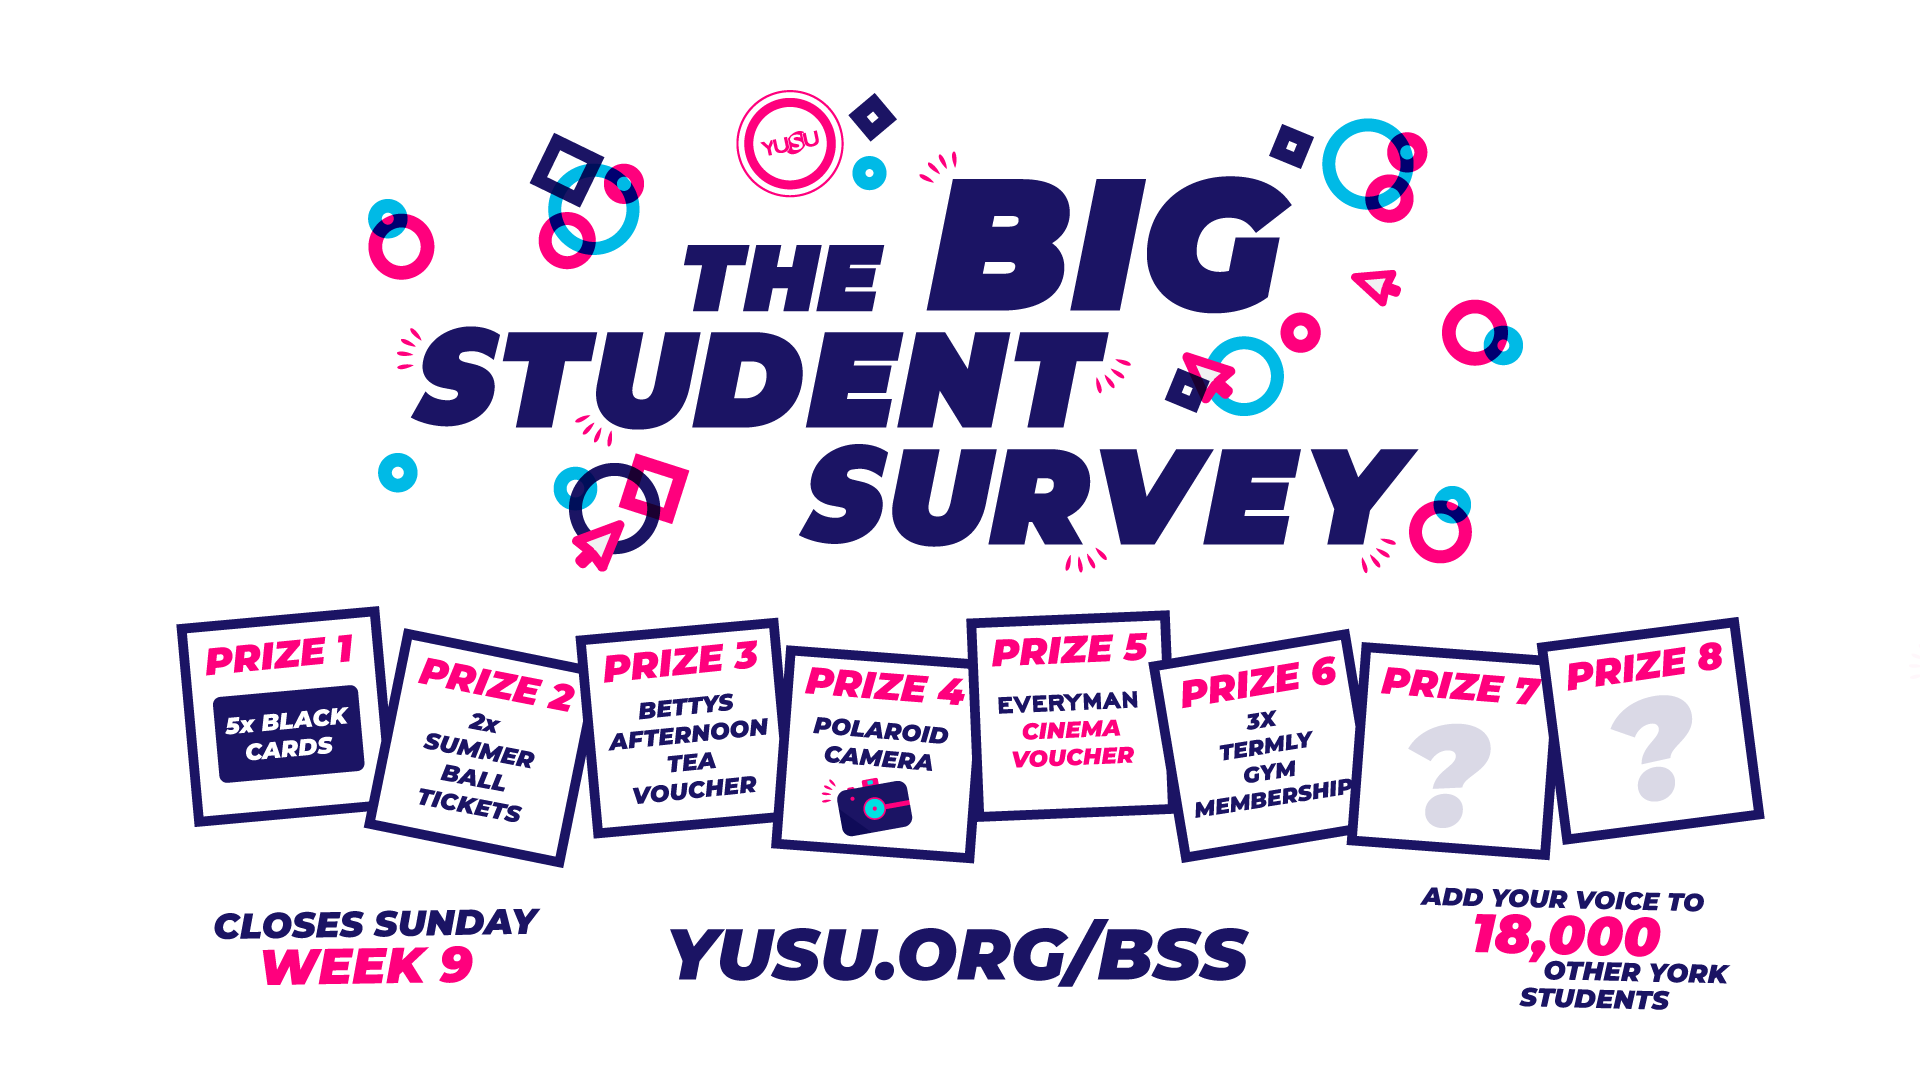 The Big Student Survey is live!